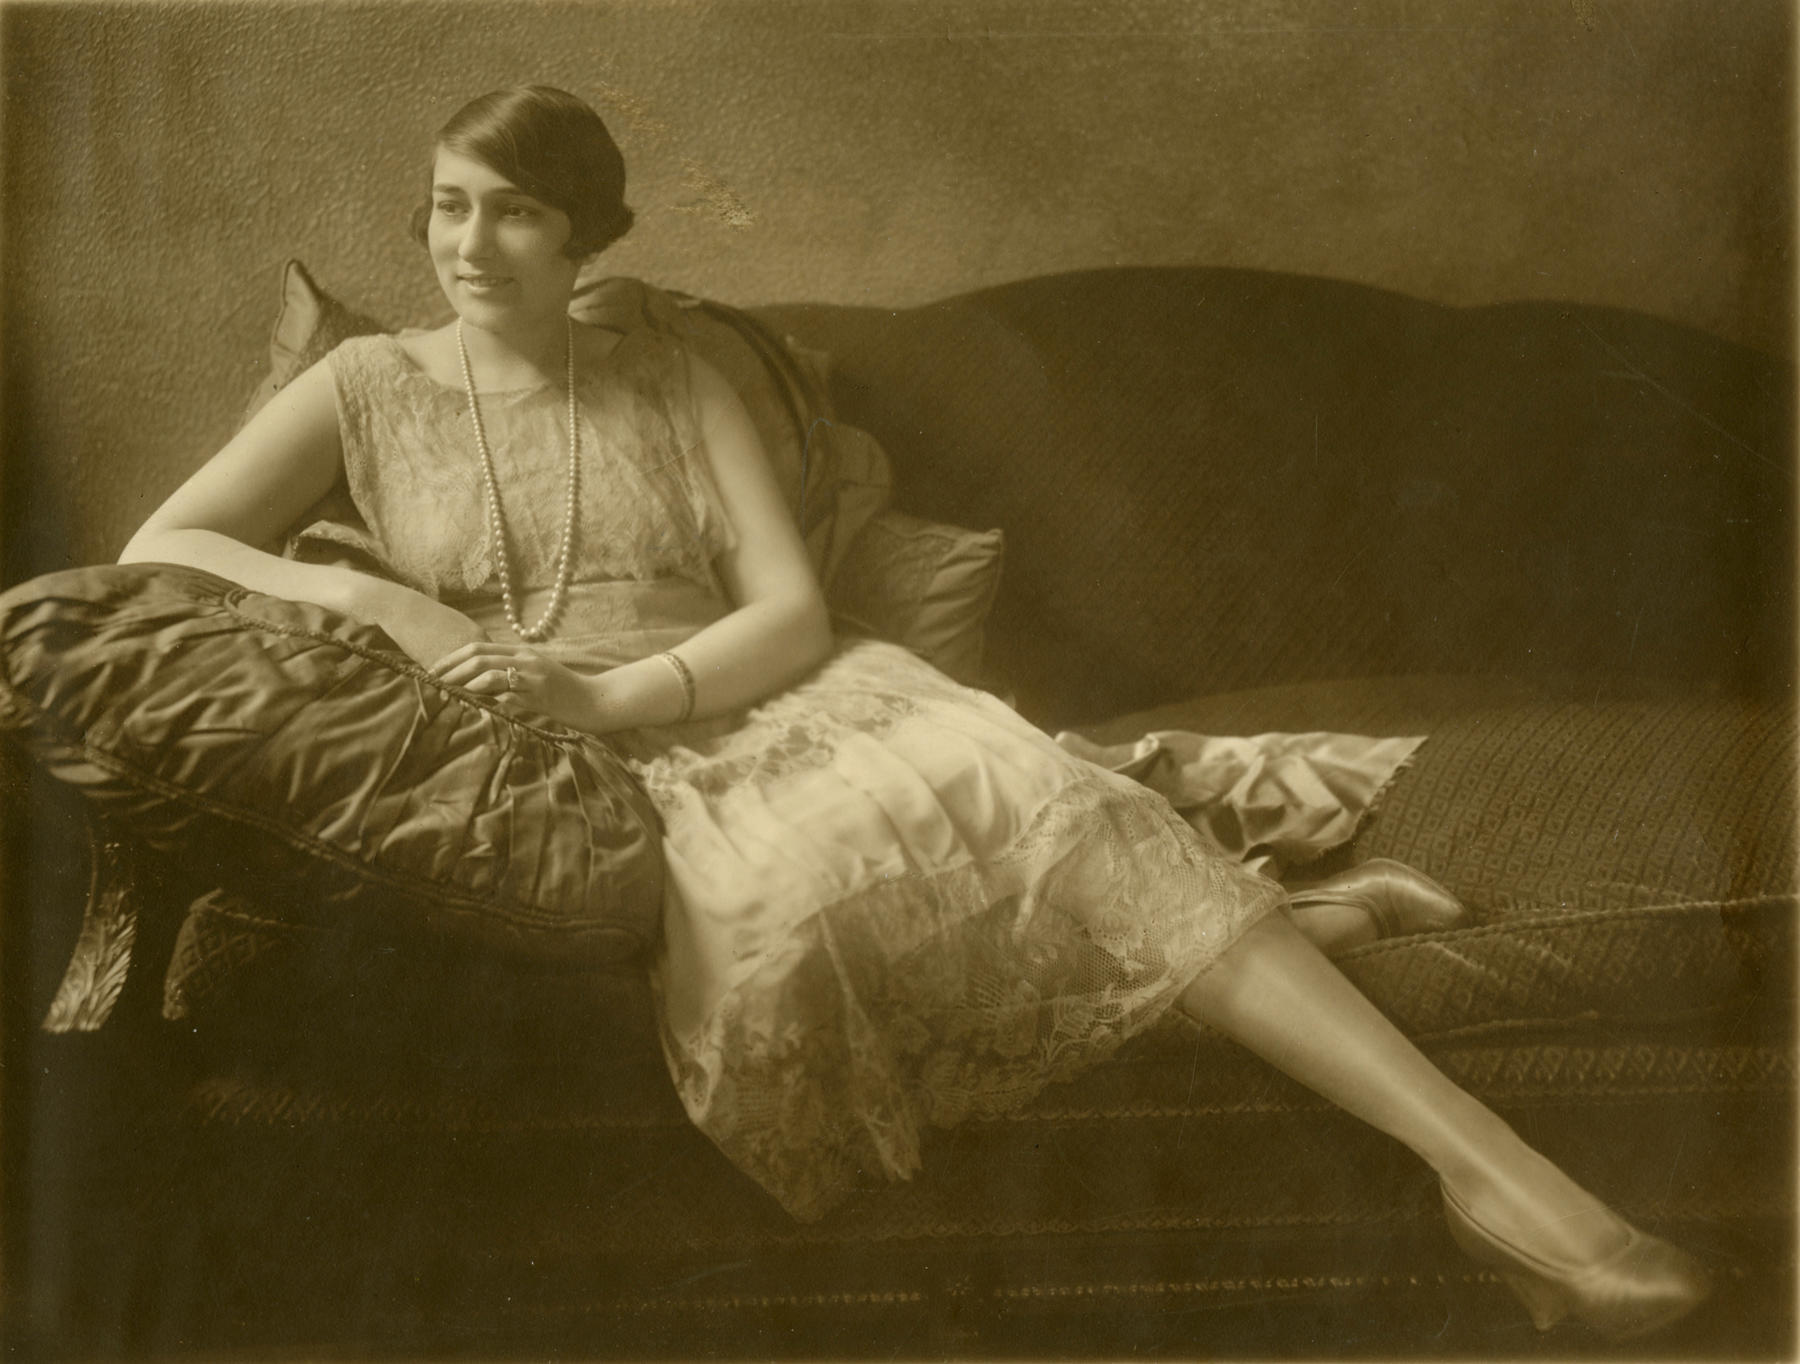 This image of Effa Manley as a 17-year old woman is one of two previously unseen images of the Hall of Fame executive donated to the Museum in 2016 by Manley's great niece Cynthia Kelly Moore. BL-49-2016 (National Baseball Hall of Fame Library)